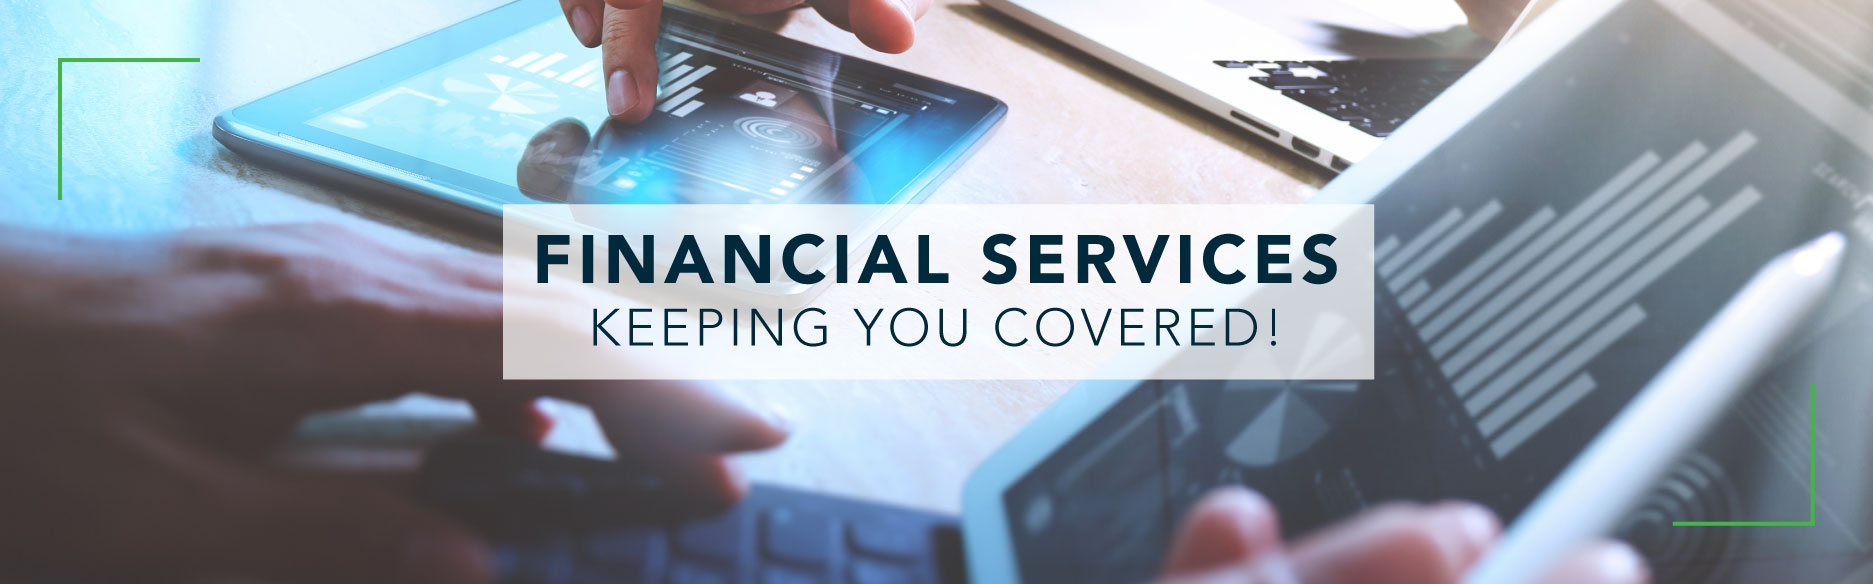 Financial Services_Banner